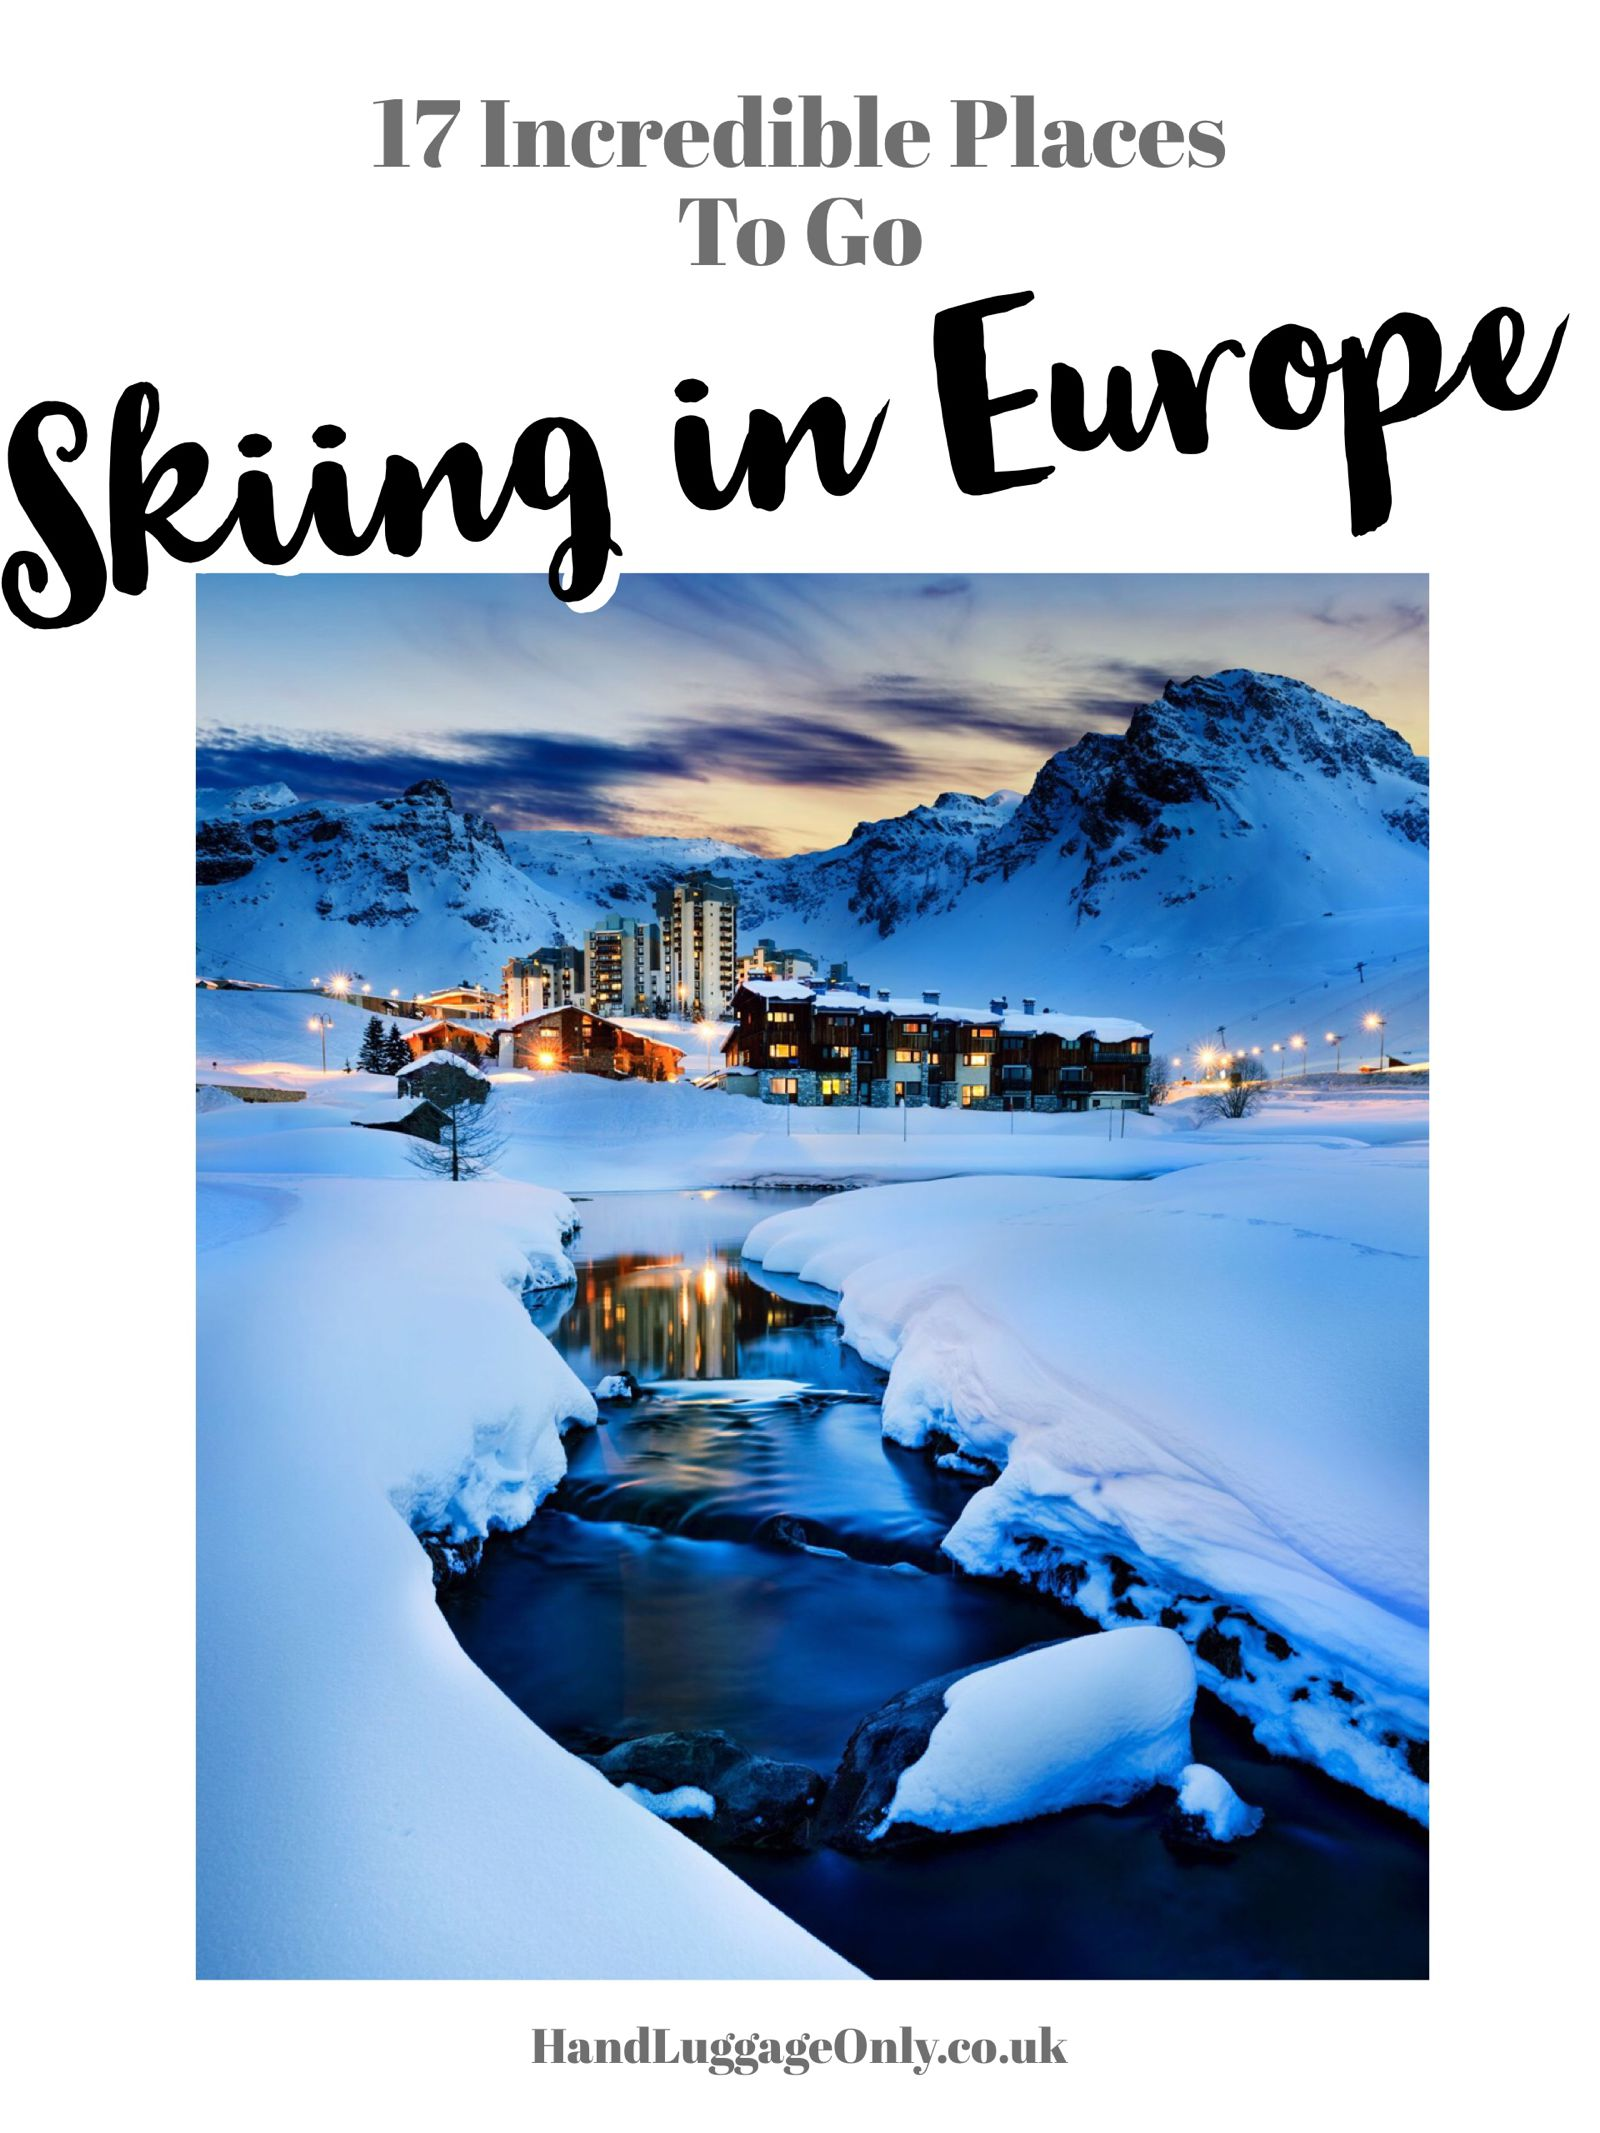 17 Incredible Places To Go Skiing In Europe (1)